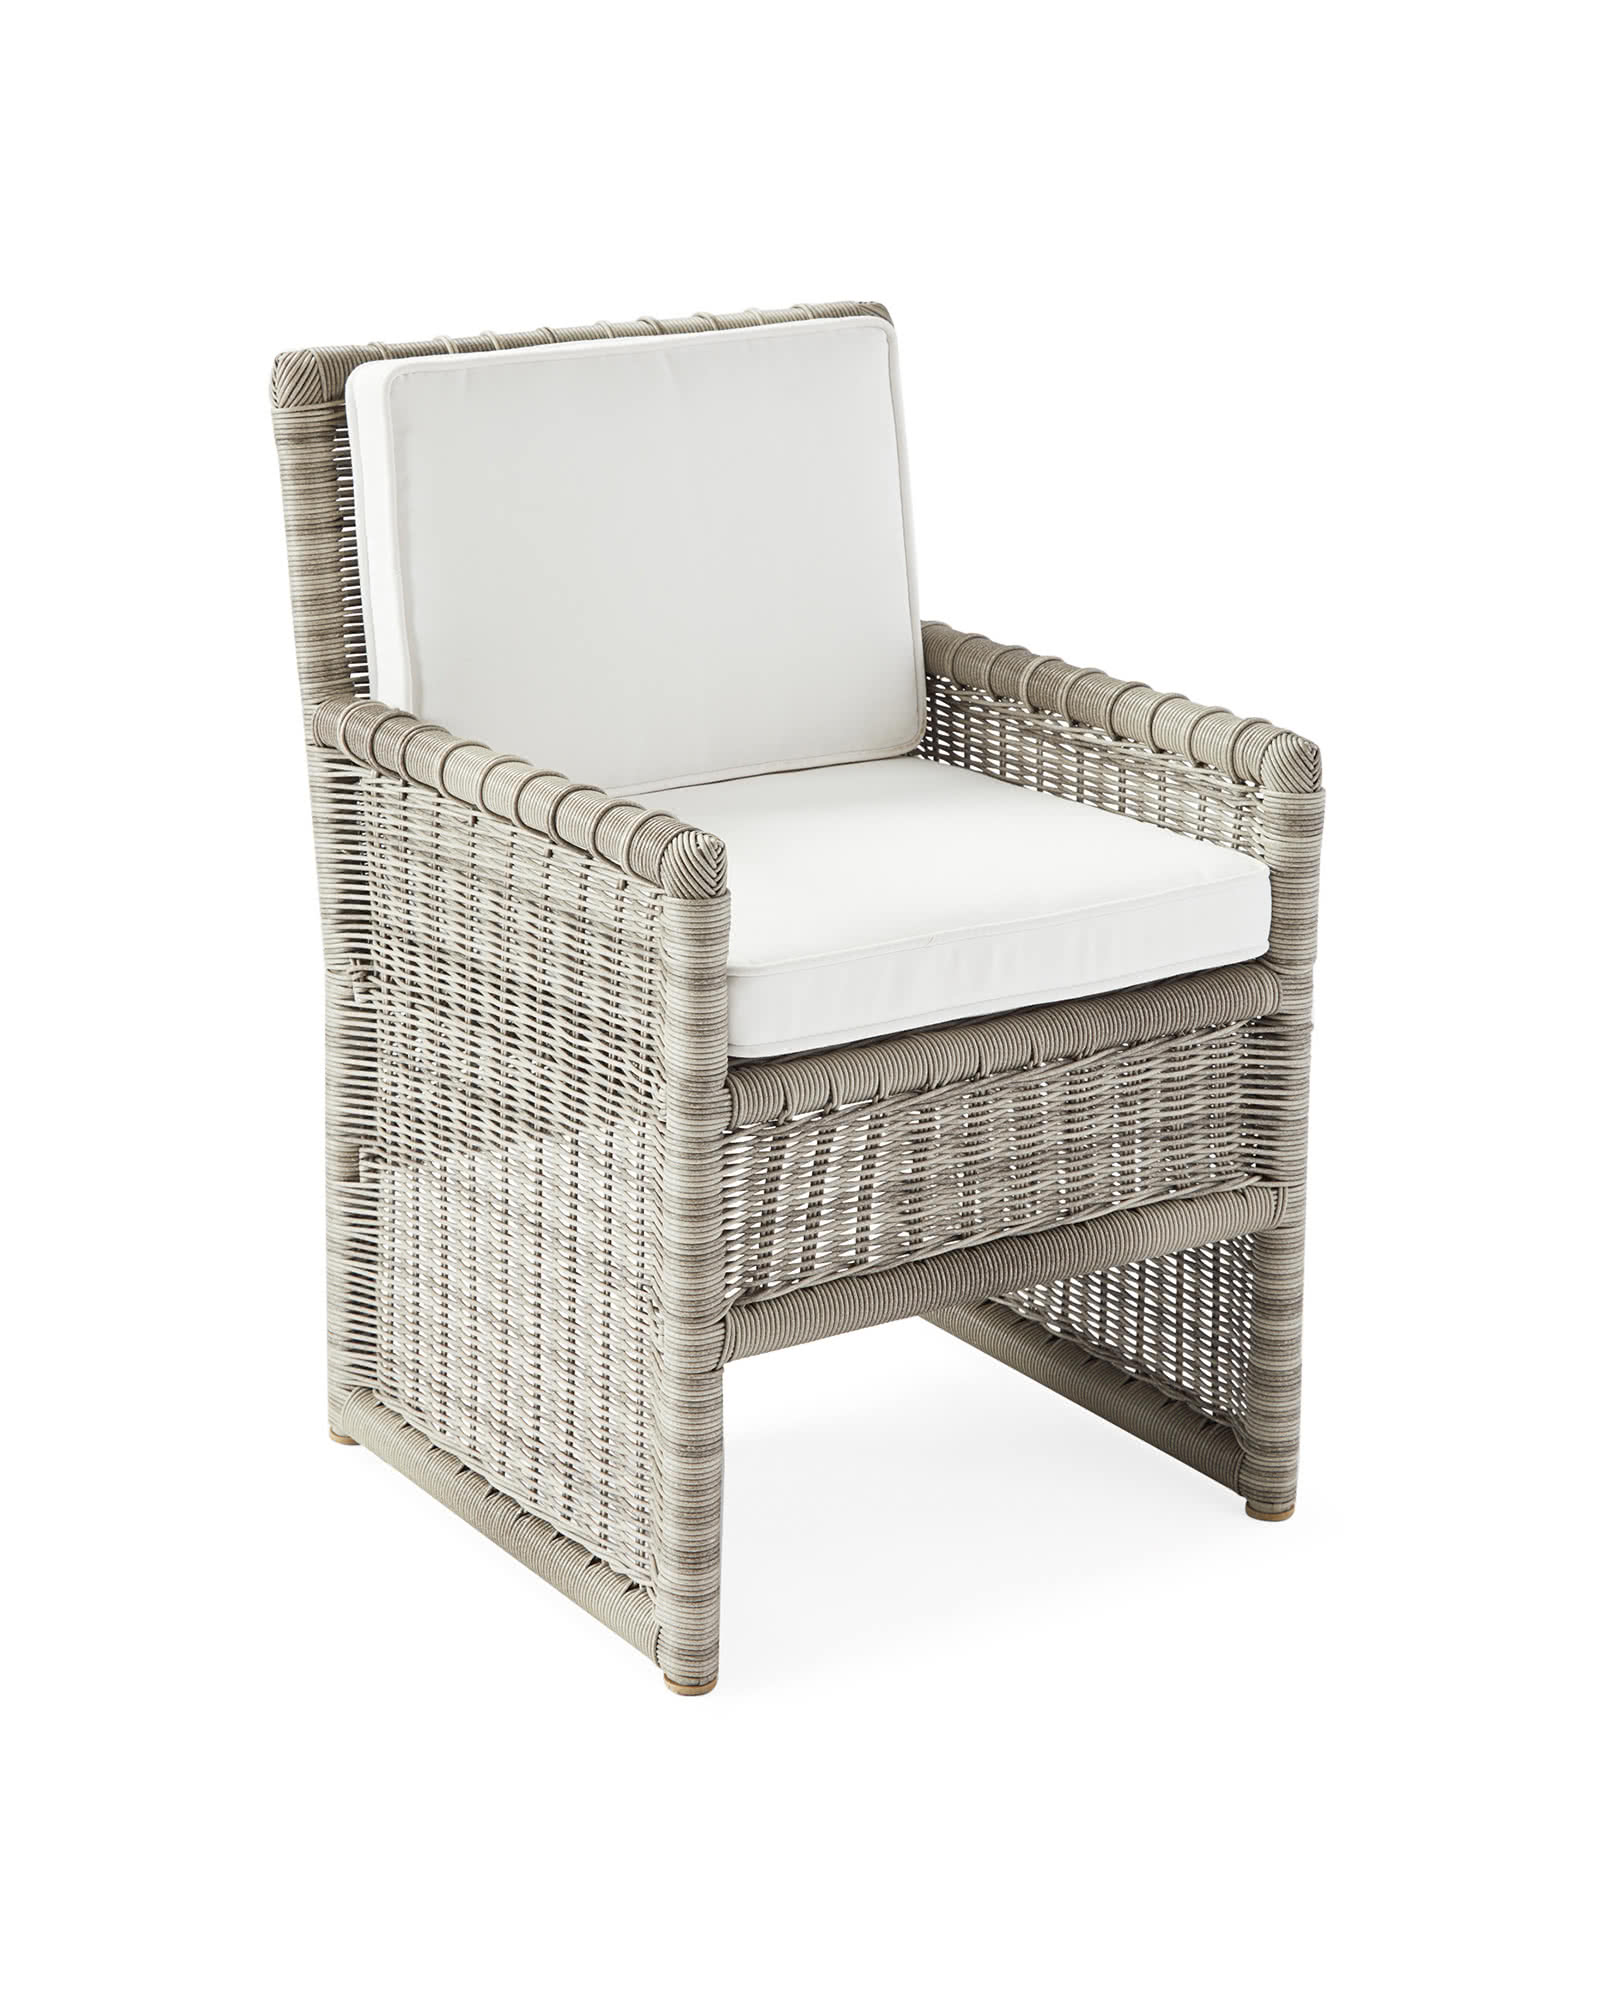 Pacifica Dining Chair - Harbor Grey,